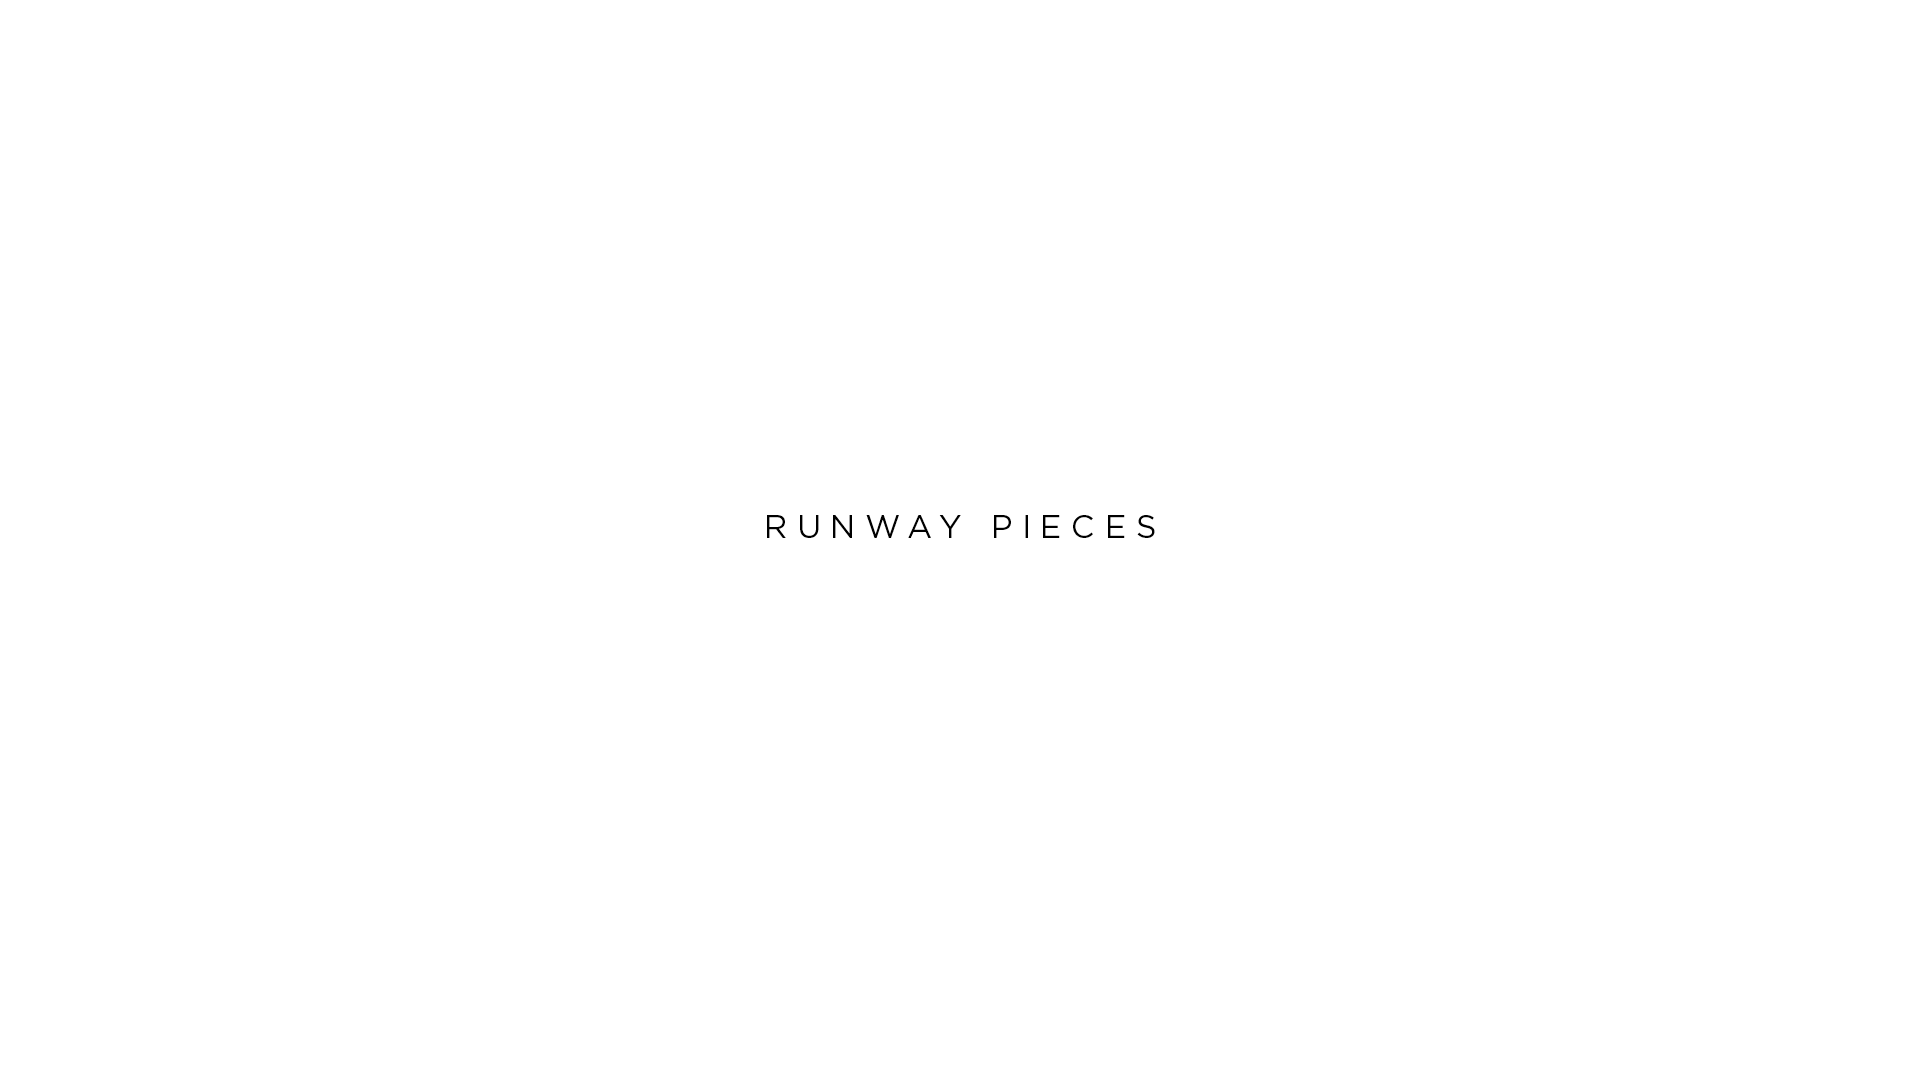 Runway pieces4